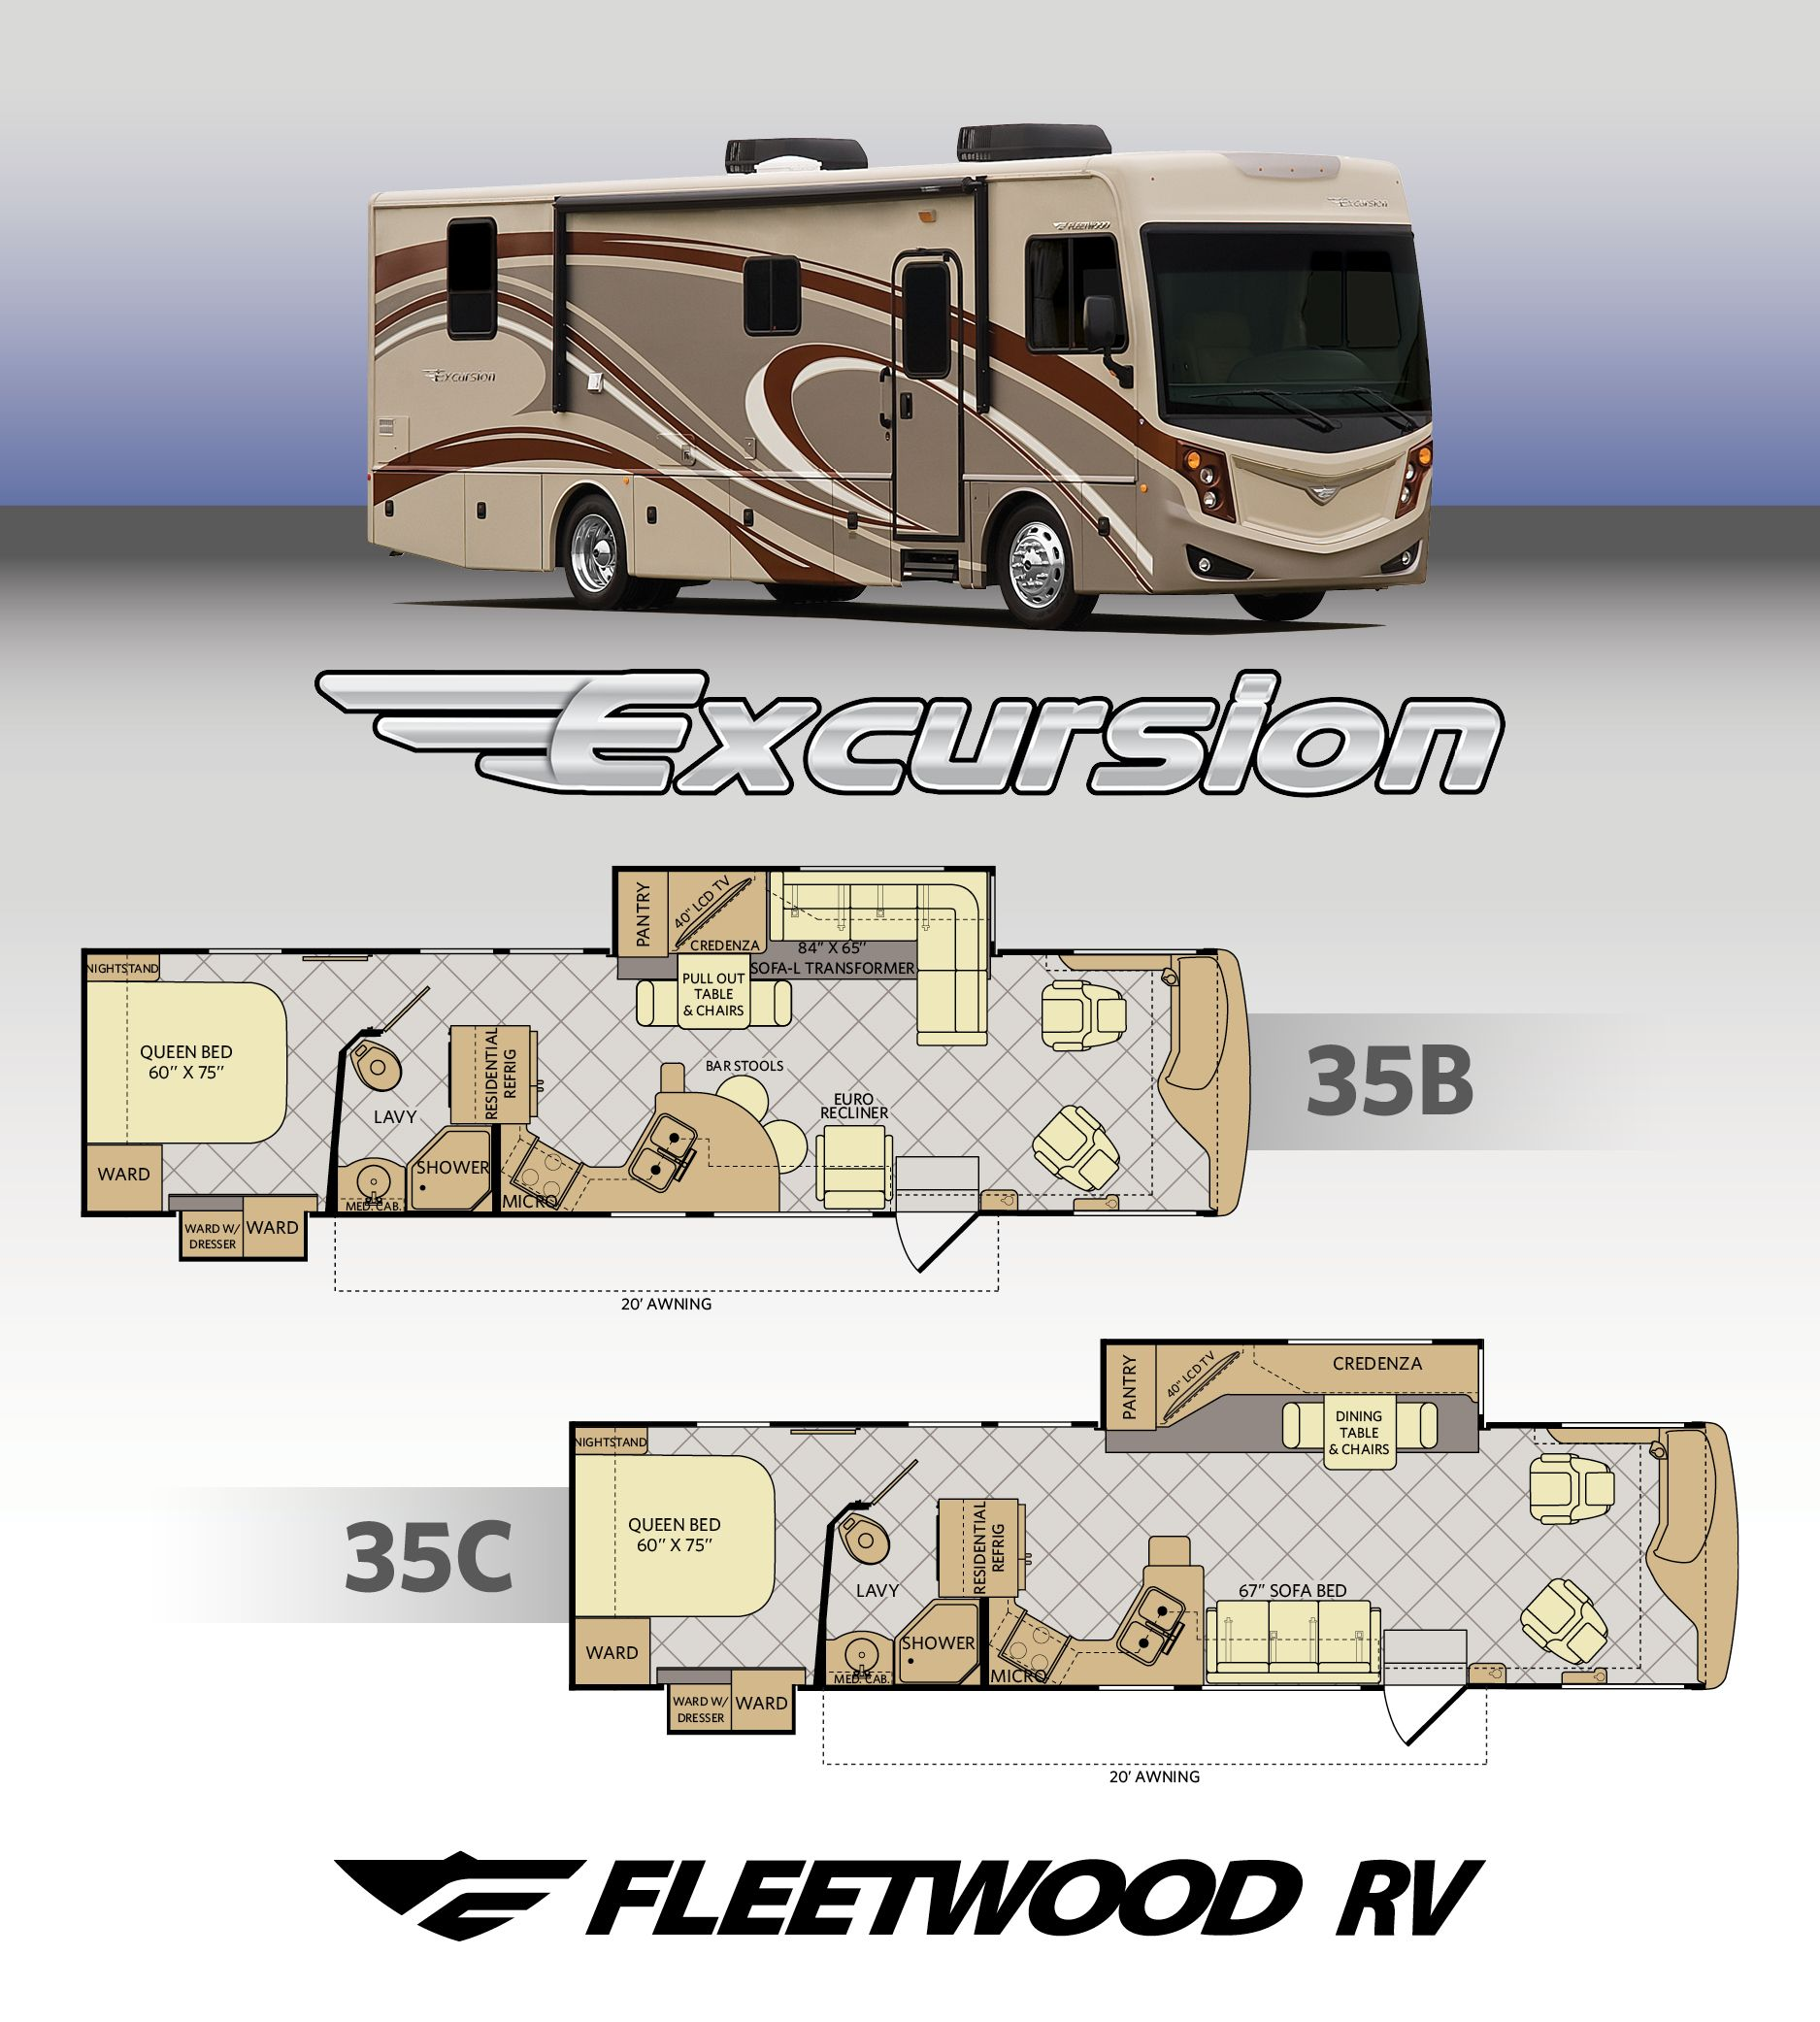 Fleetwood Rv Expands Already New Excursion Line Up Rv Trader